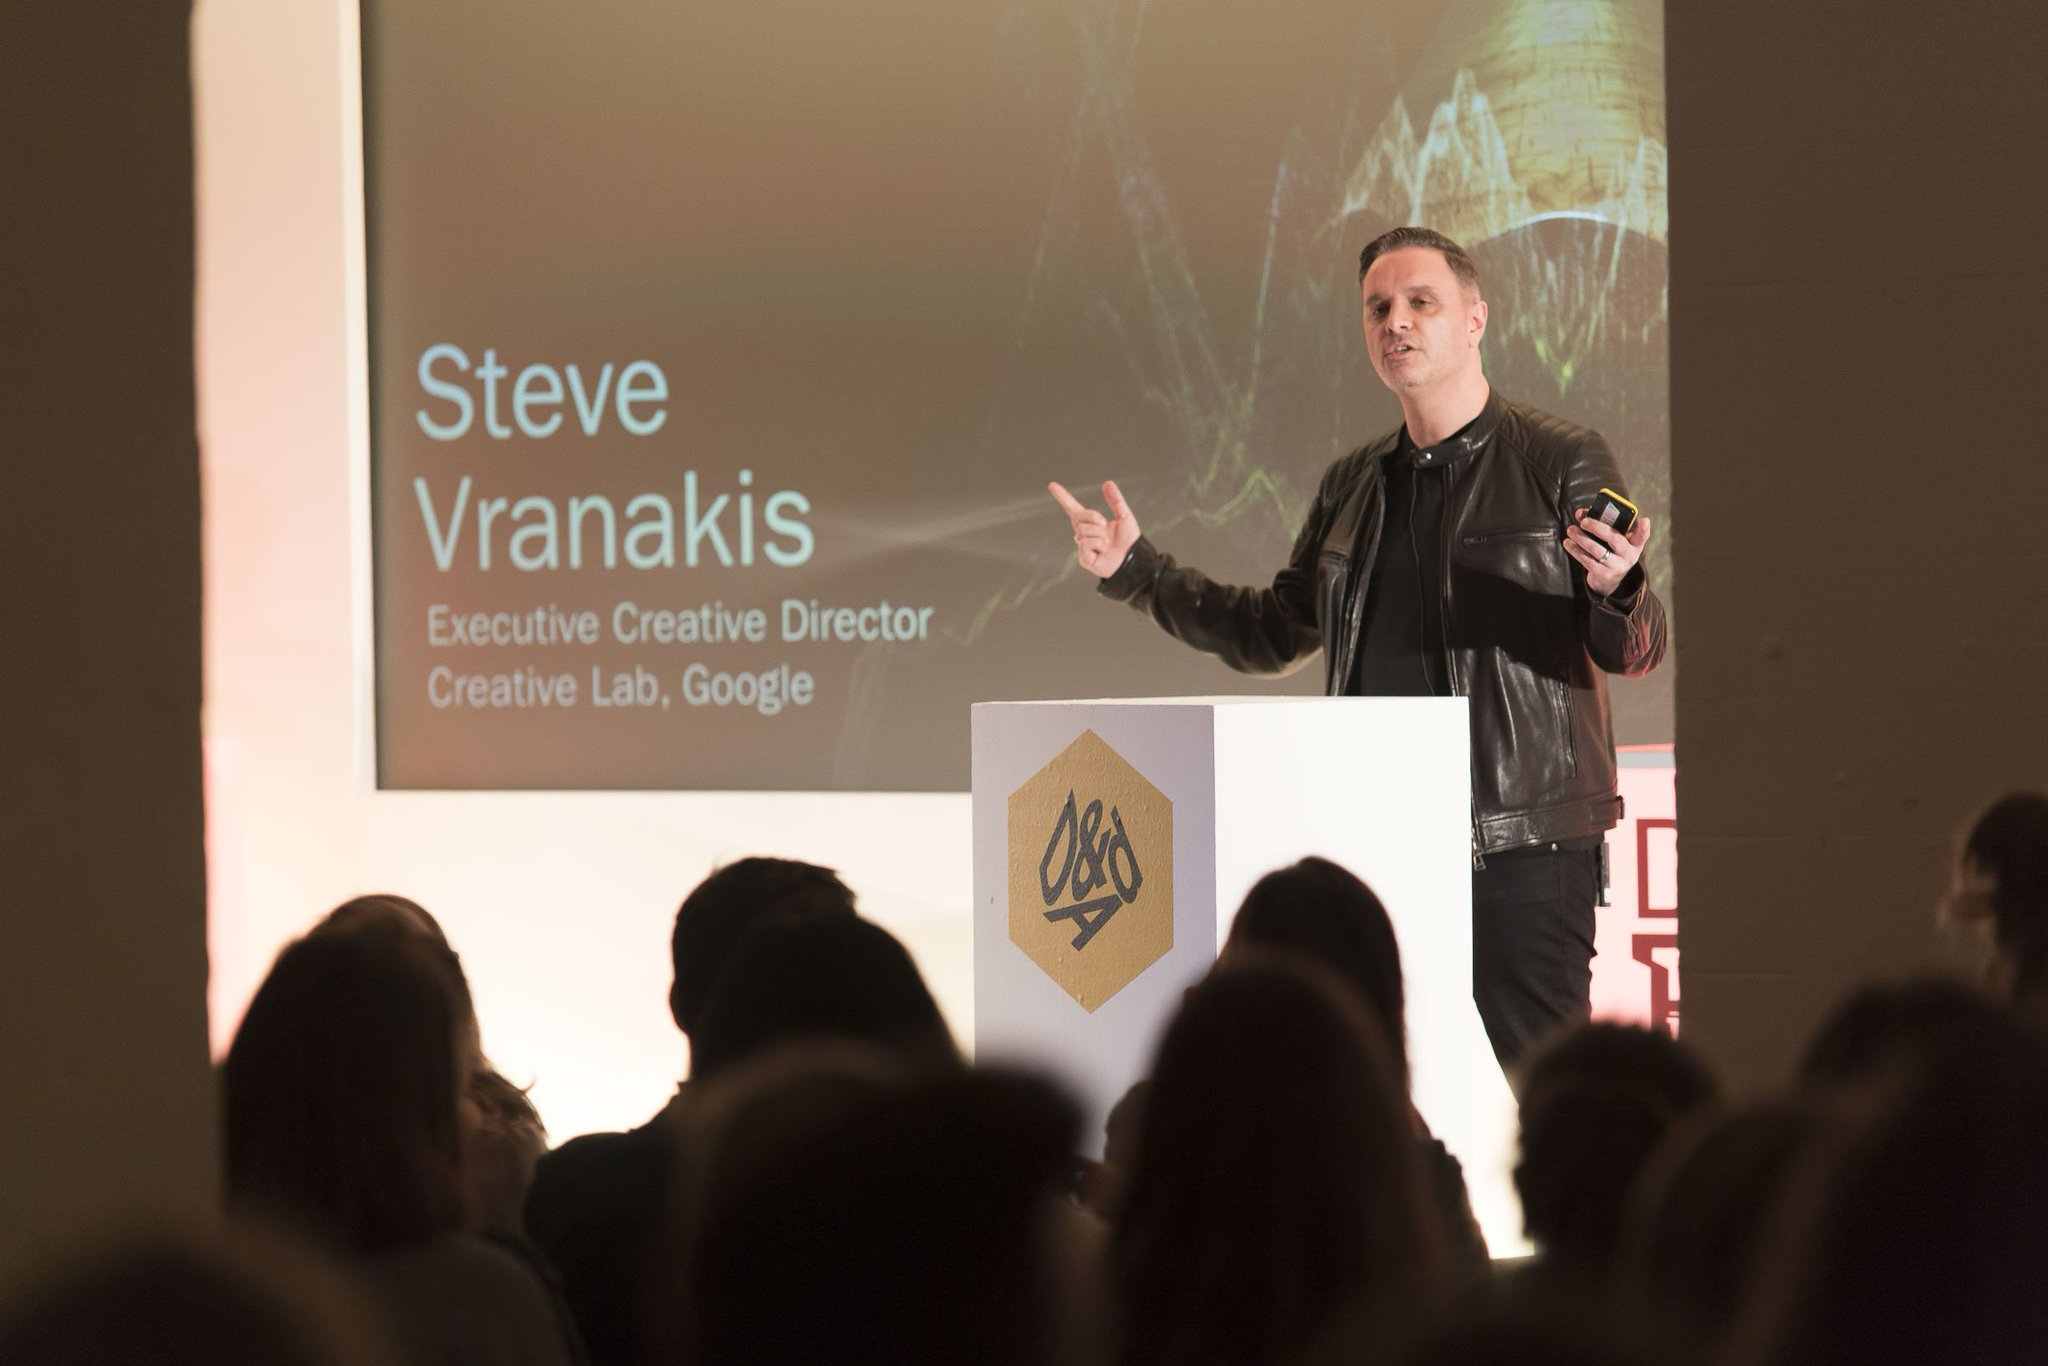 Inspiring words from future D&AD President and @Google Creative Lab ECD, @stevevran at #DandAD17 earlier. https://t.co/ASiGvG3XMs